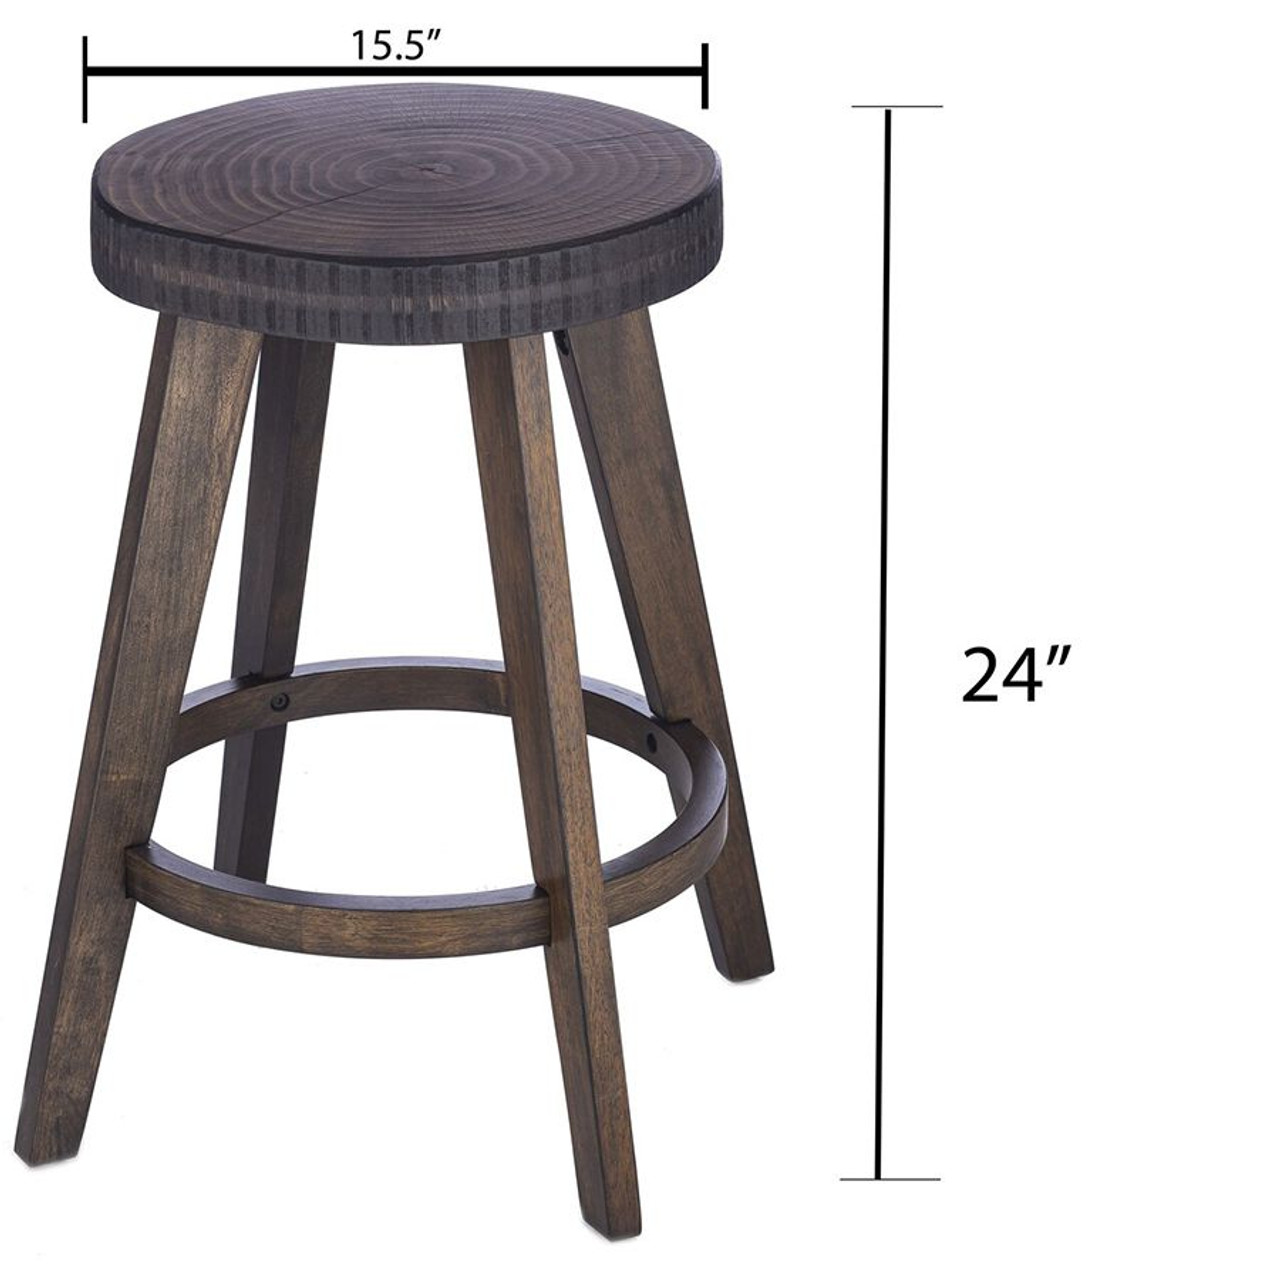 Set of 2 Barstools Counter & Bar Height